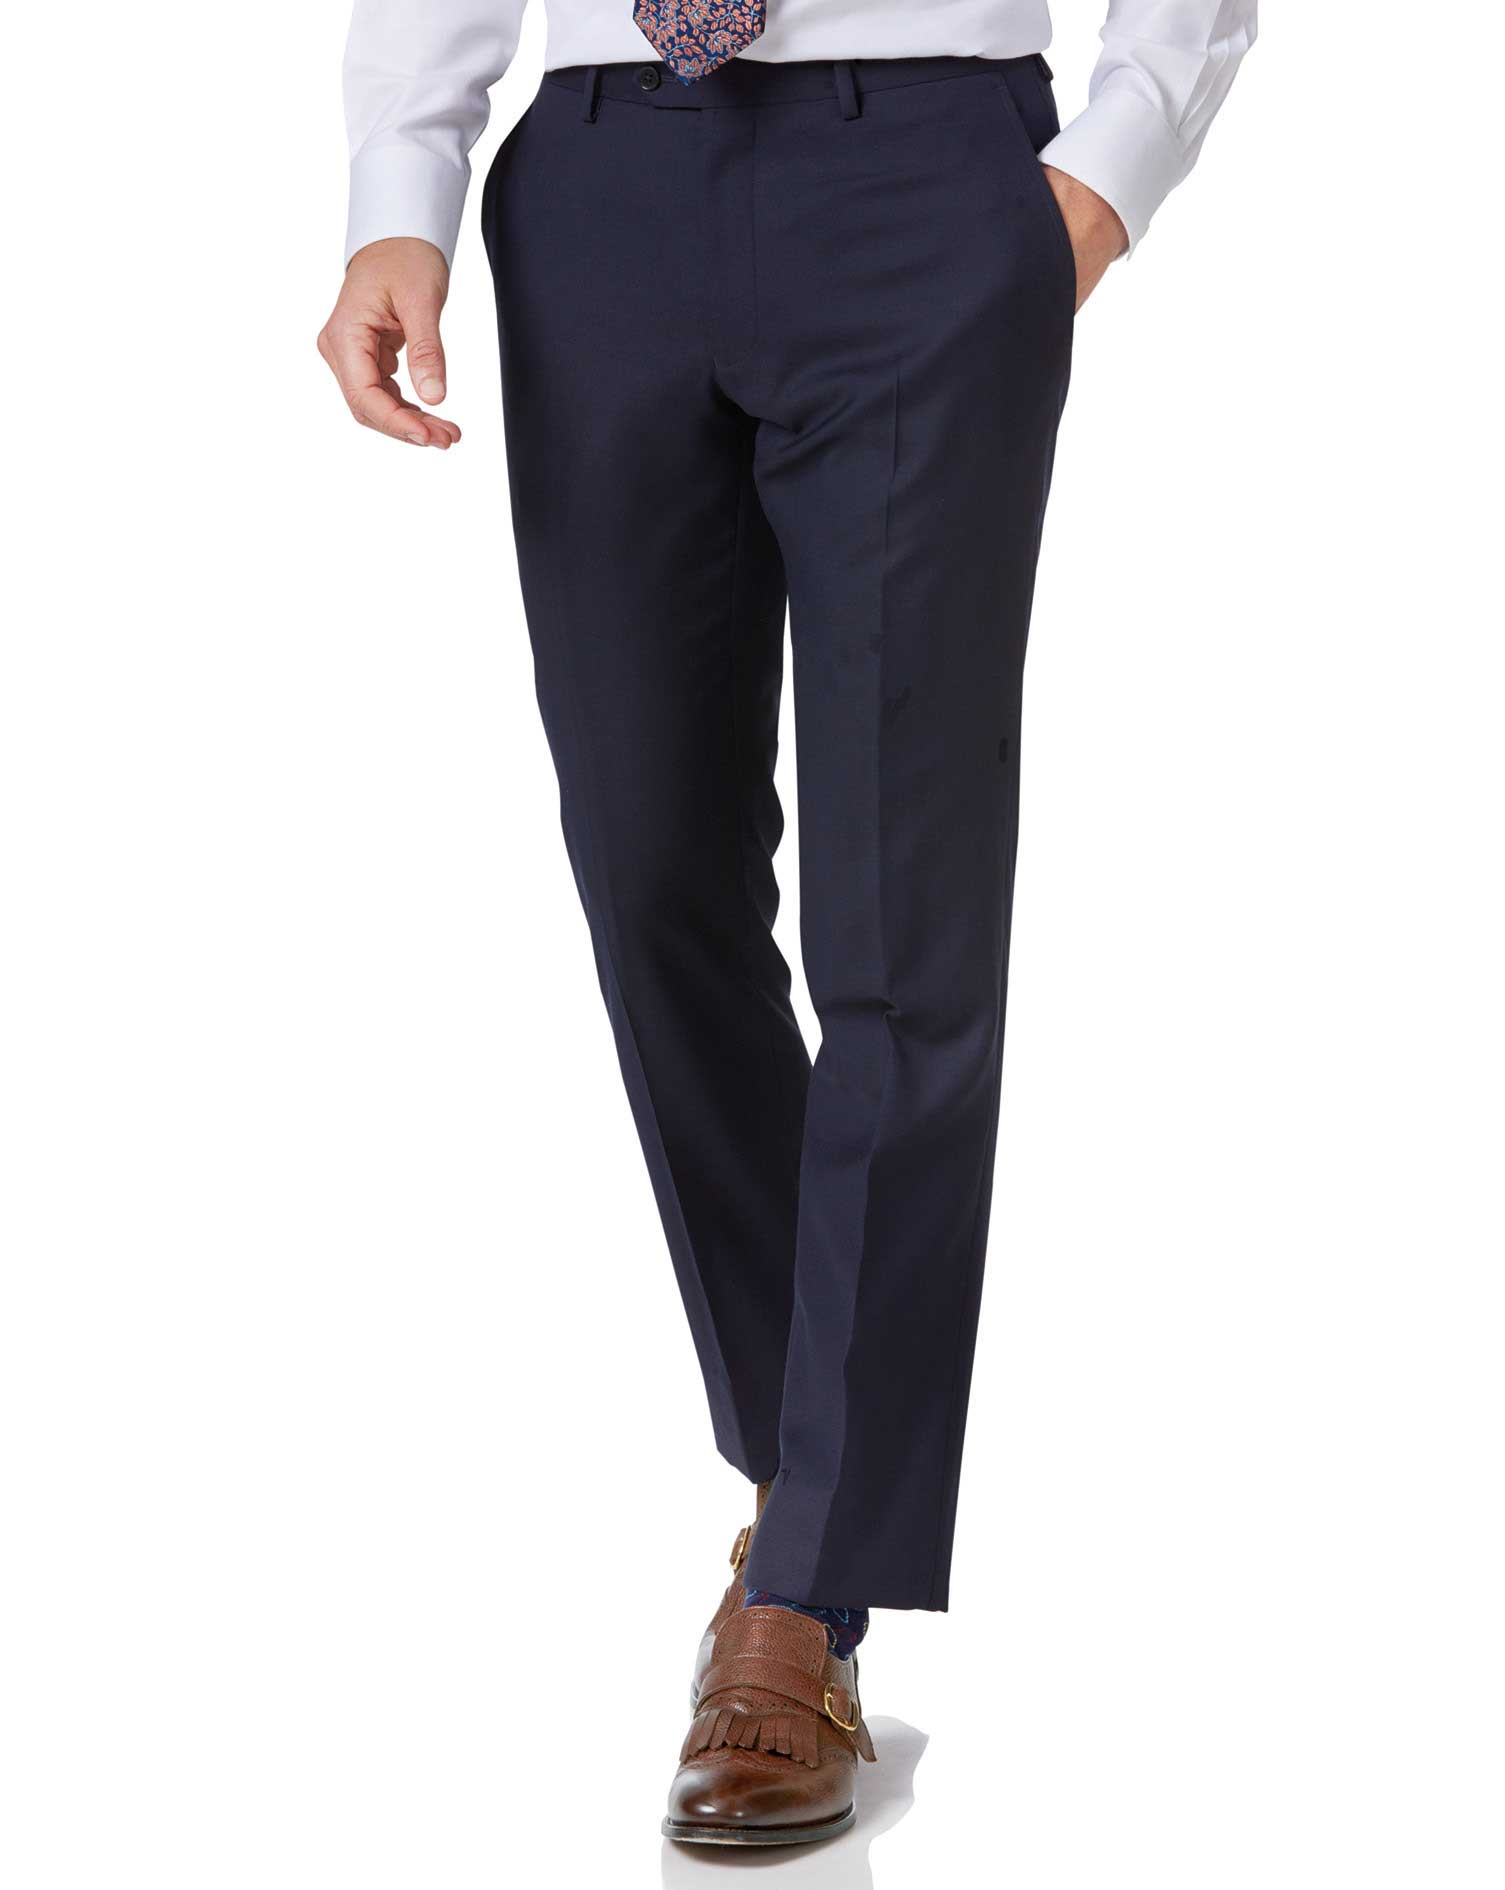 Navy Slim Fit Twill Business Suit Trousers Size W38 L34 by Charles Tyrwhitt